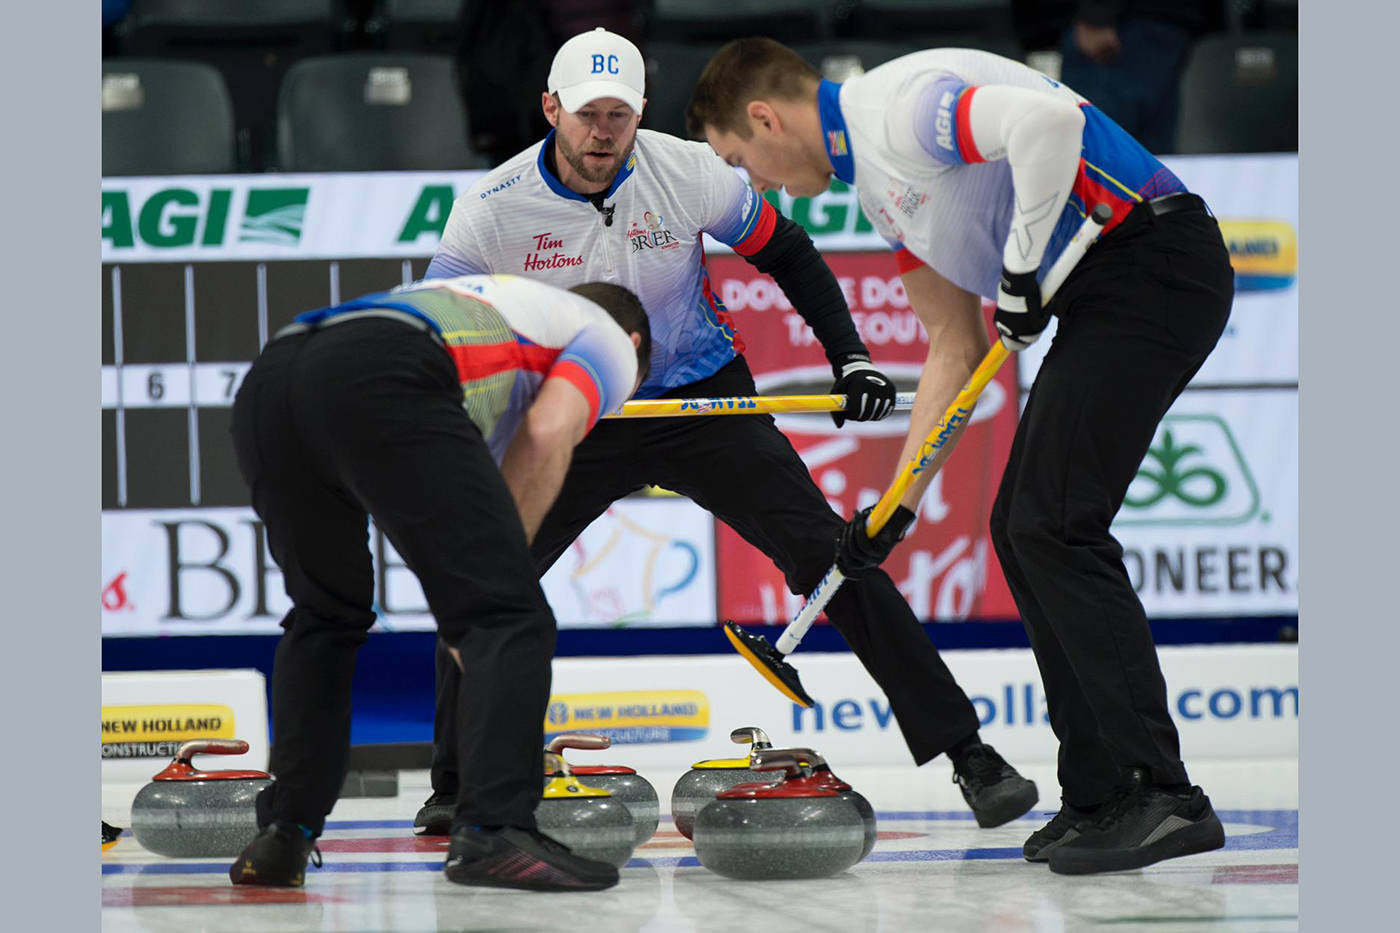 Vernon's Jim Cotter (centre) and Kelowna's Rick Sawatsky (left) and Andrew Nerpin follow a Steve Laycock shot into the house at the 2021 Tim Hortons Brier Canadian men's curling championships in Calgary. (Michael Burns Photography)